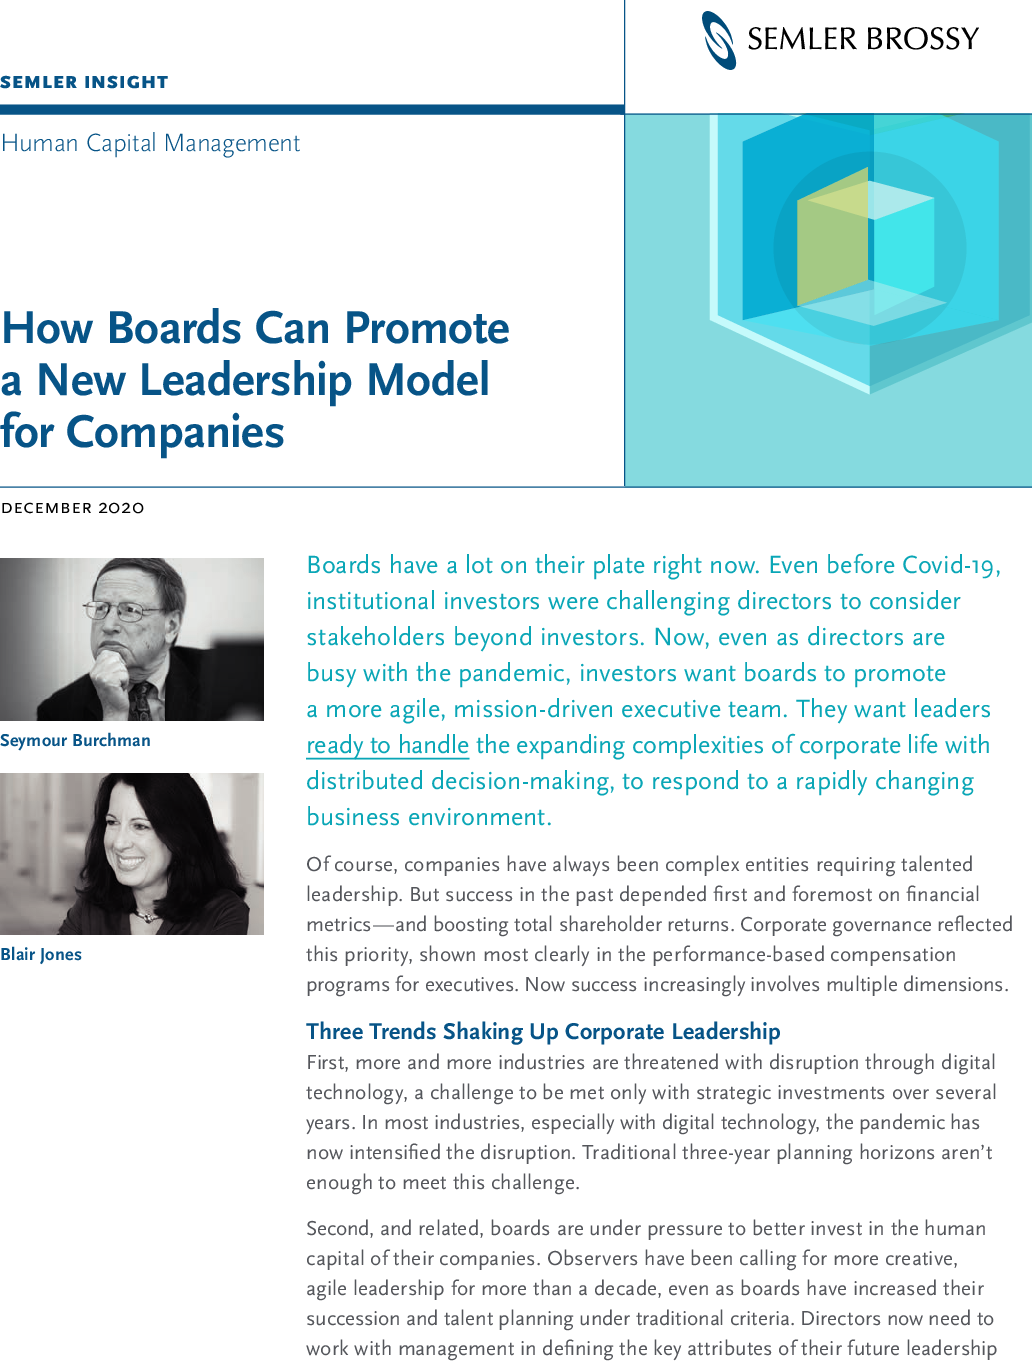 How Boards Can Promote A New Leadership Model